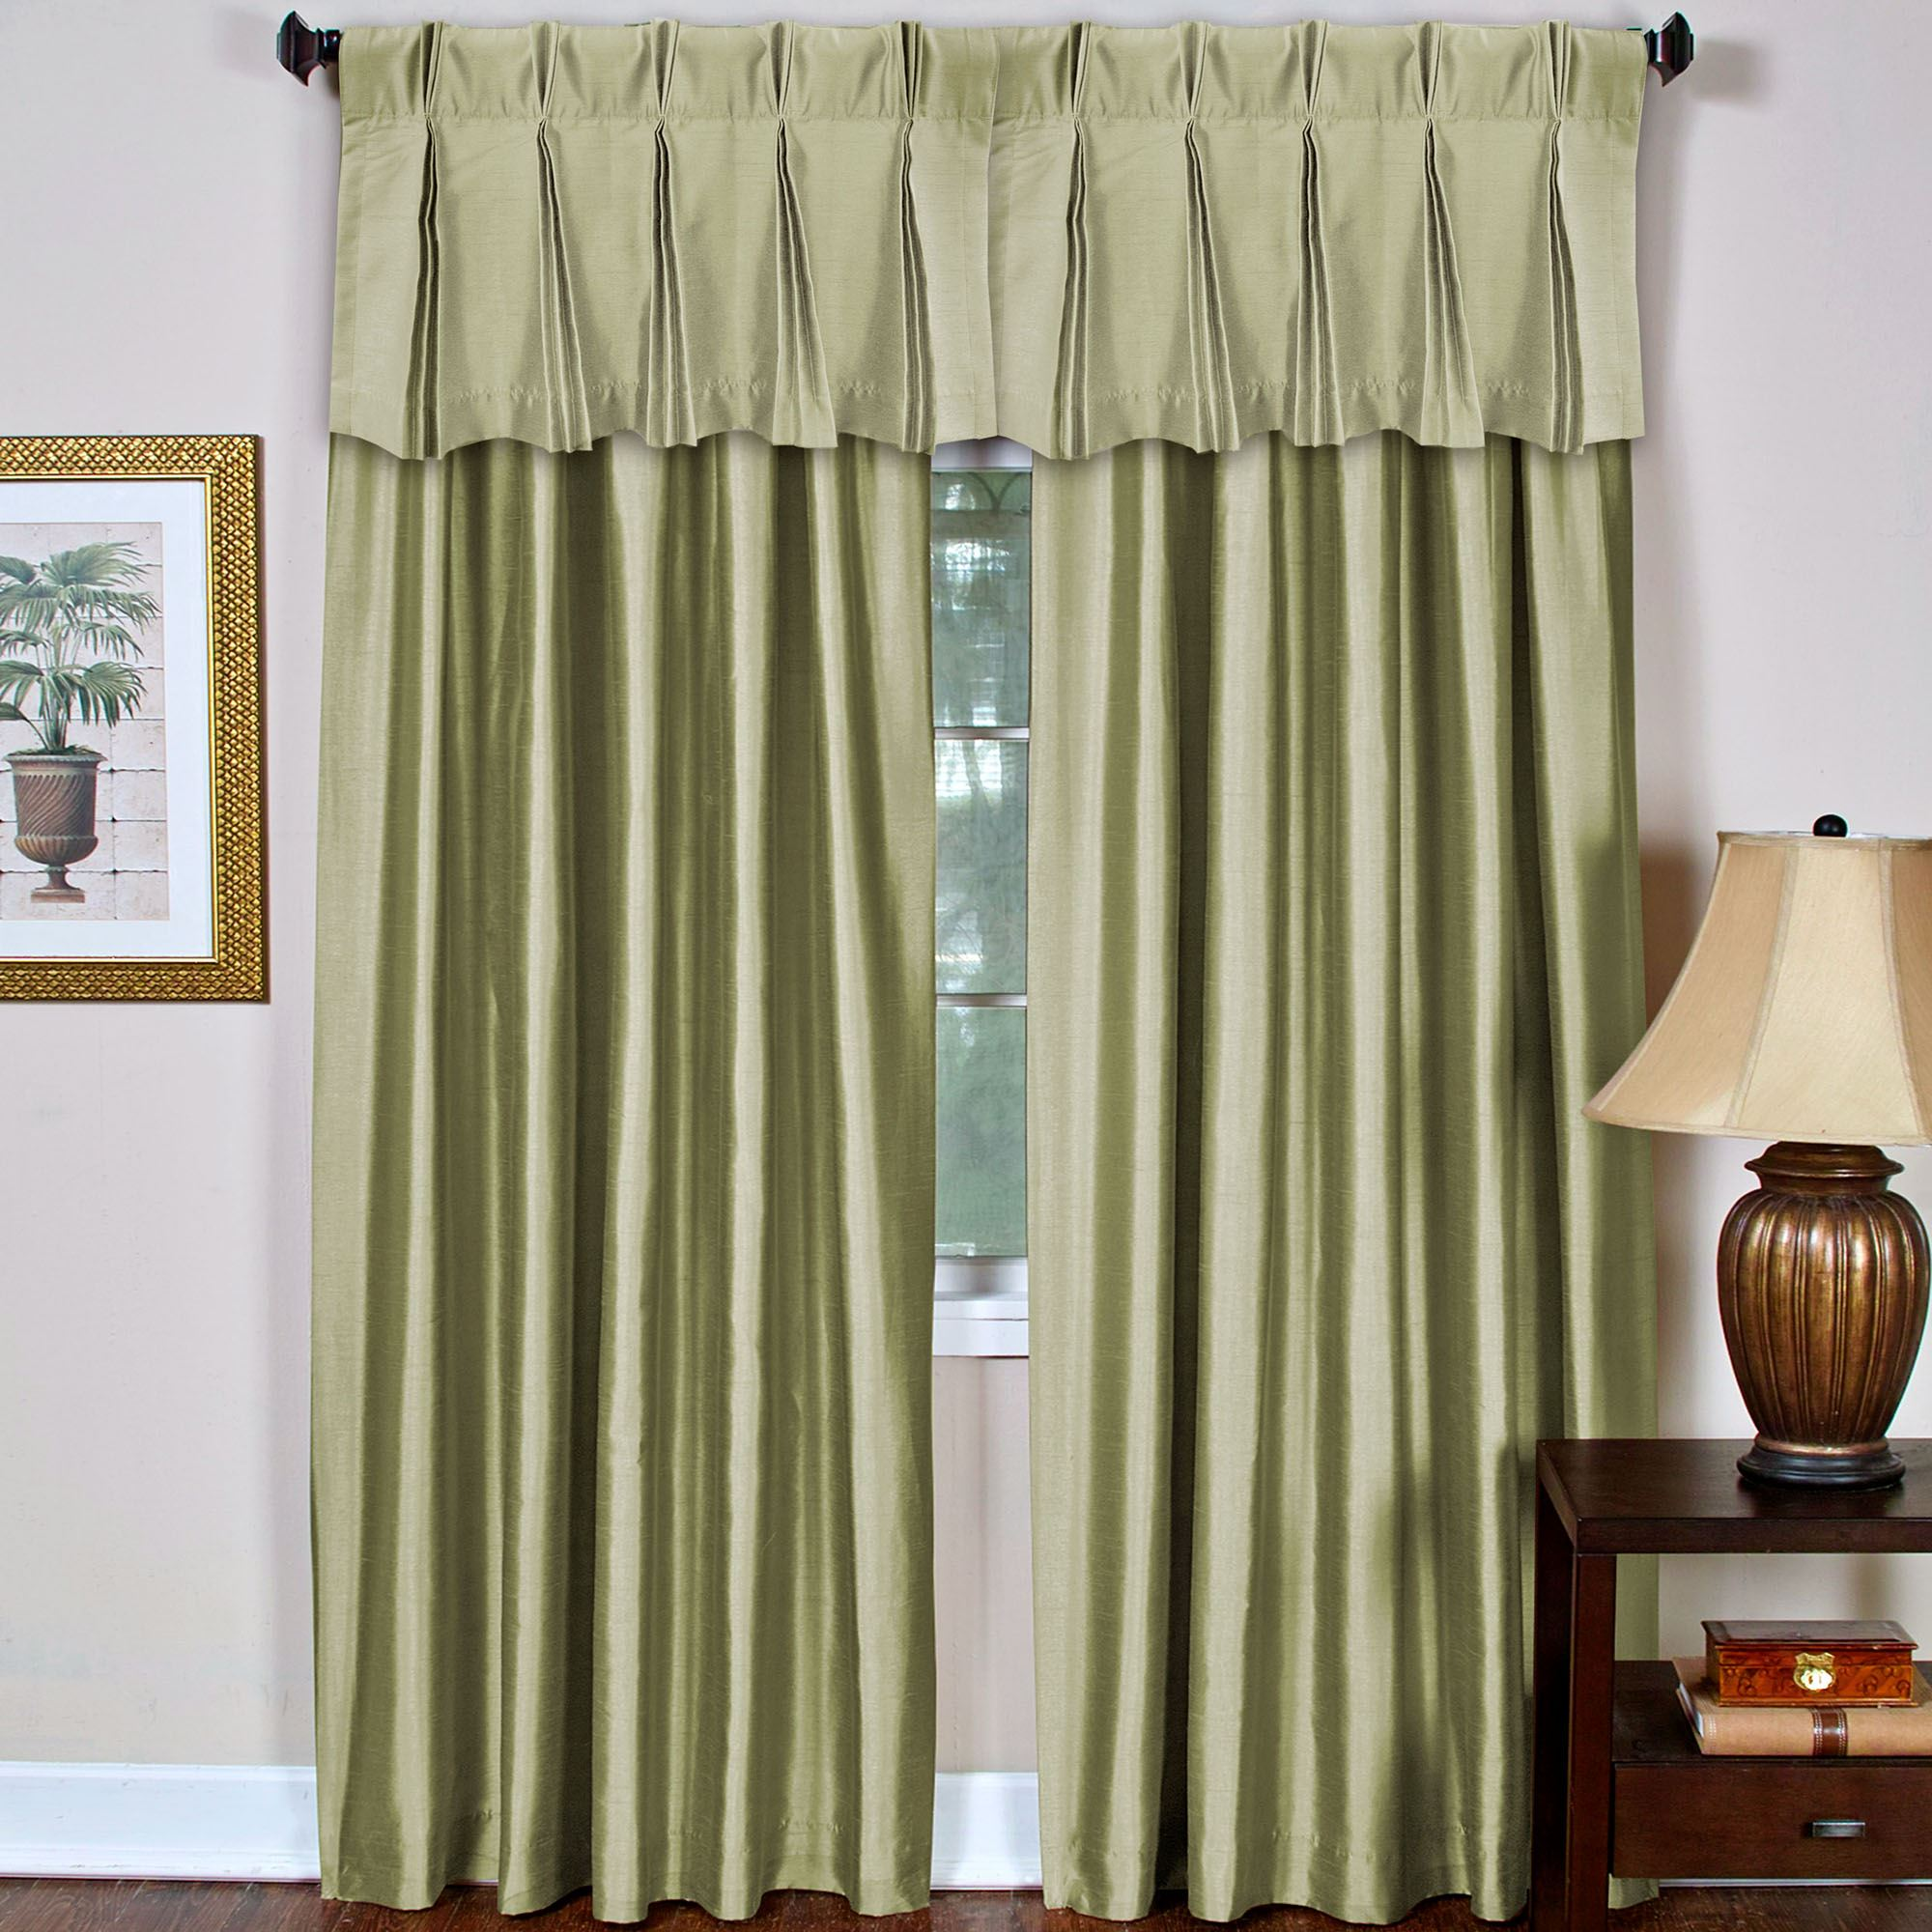 pdp pinch curtains curtain pencil at rsp main lined hooks org sariska pleat boatylicious lewis pleated john pair